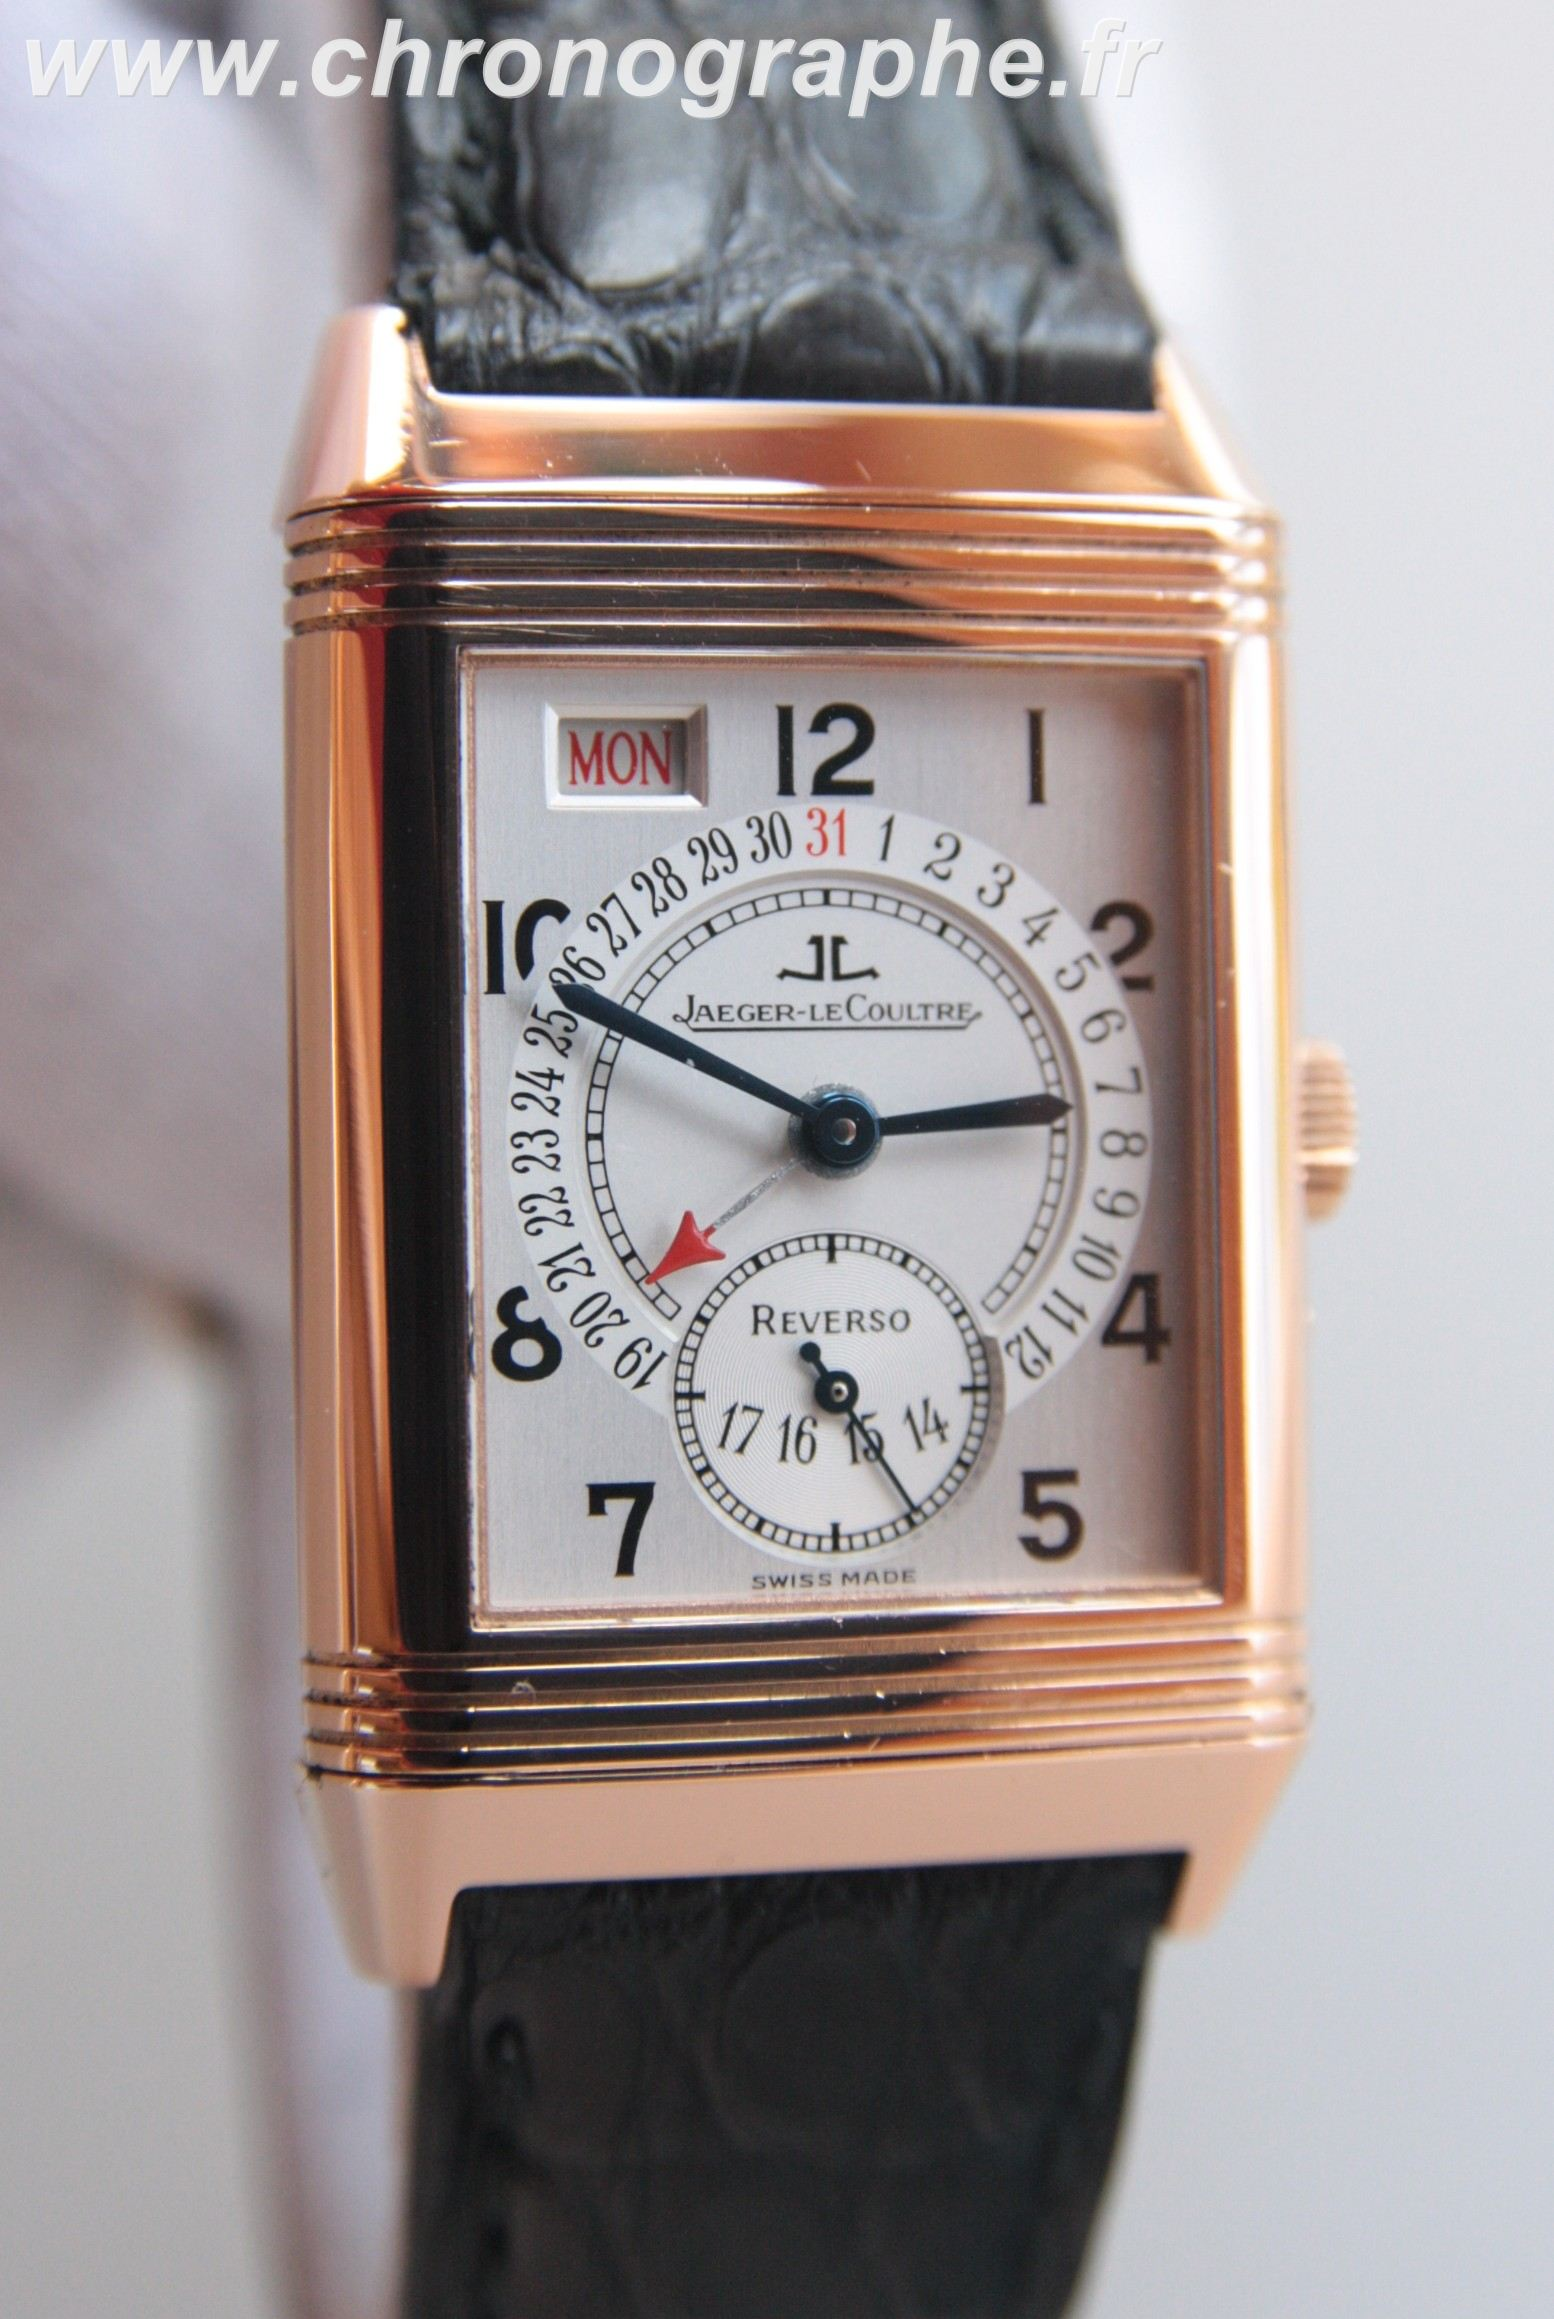 Montre reverso or occasion for Jaeger lecoultre occasion